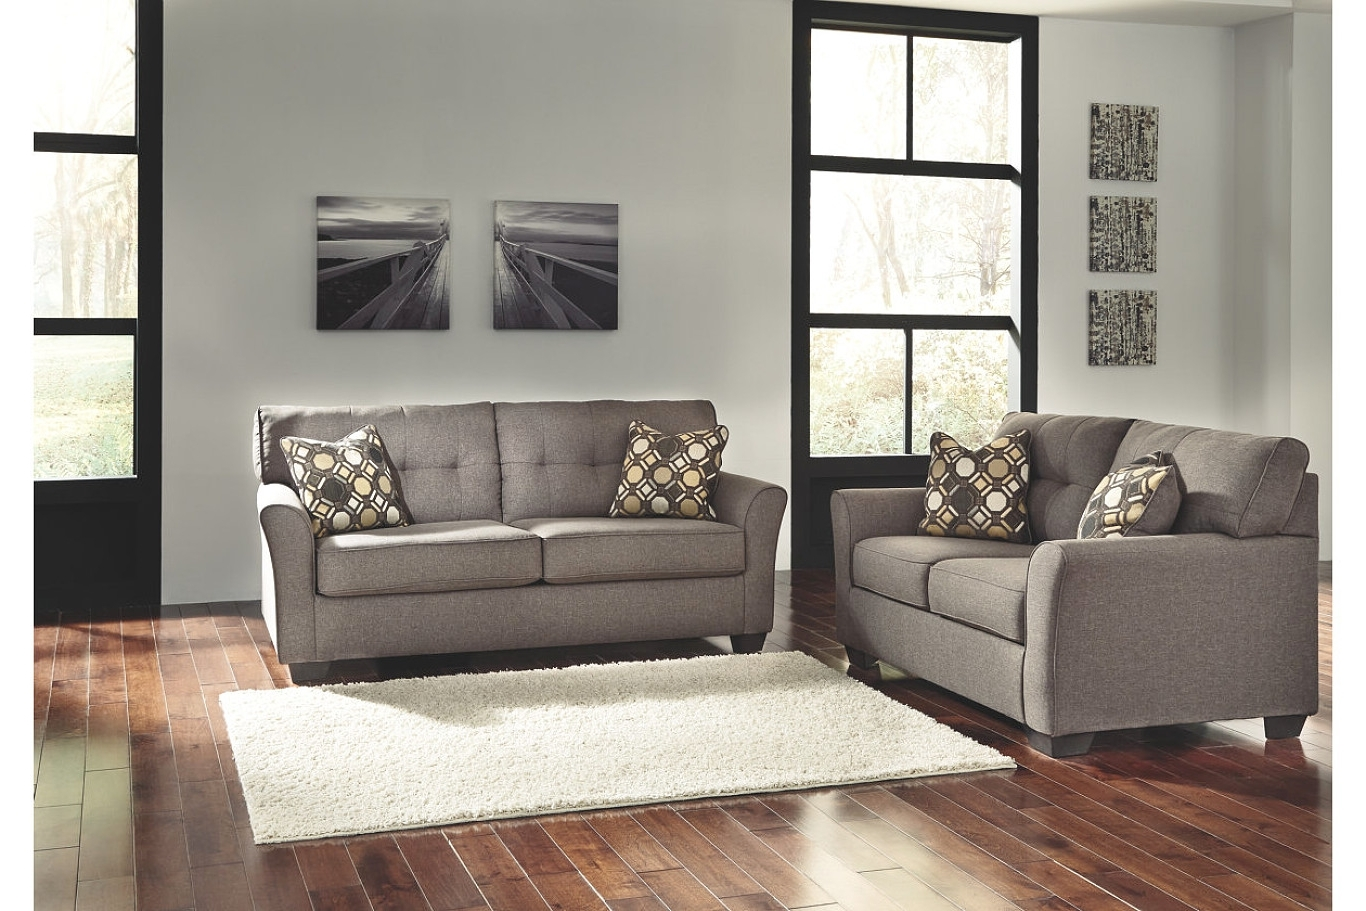 Complete Living Room Sets Nebraska Furniture Mart Leather Intended For Most Recently Released Nebraska Furniture Mart Sectional Sofas (View 5 of 20)